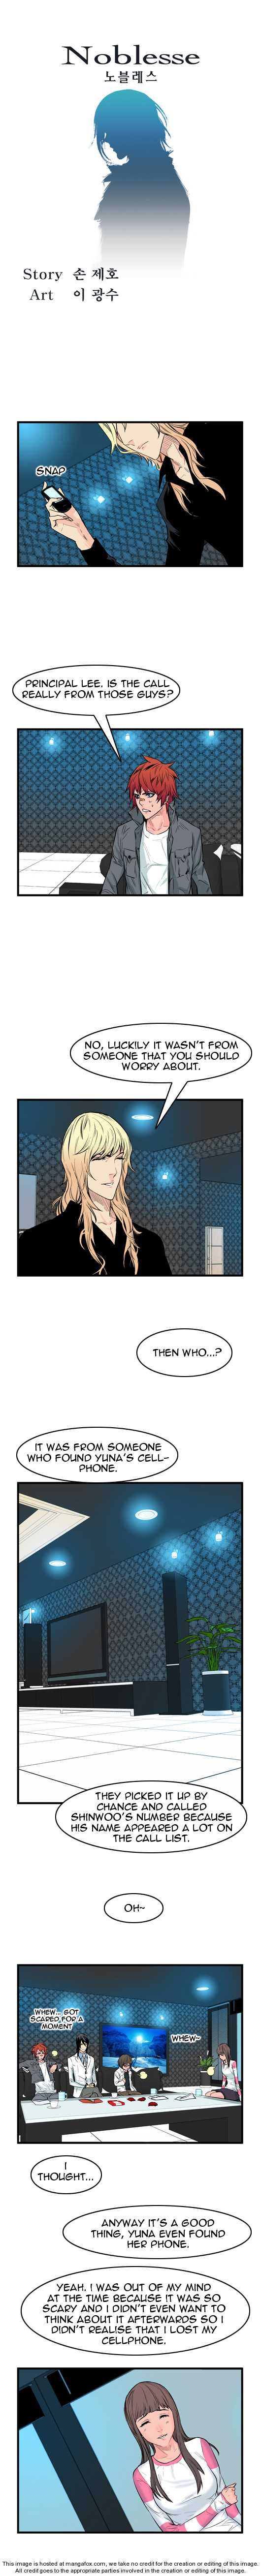 Noblesse 53 Page 1